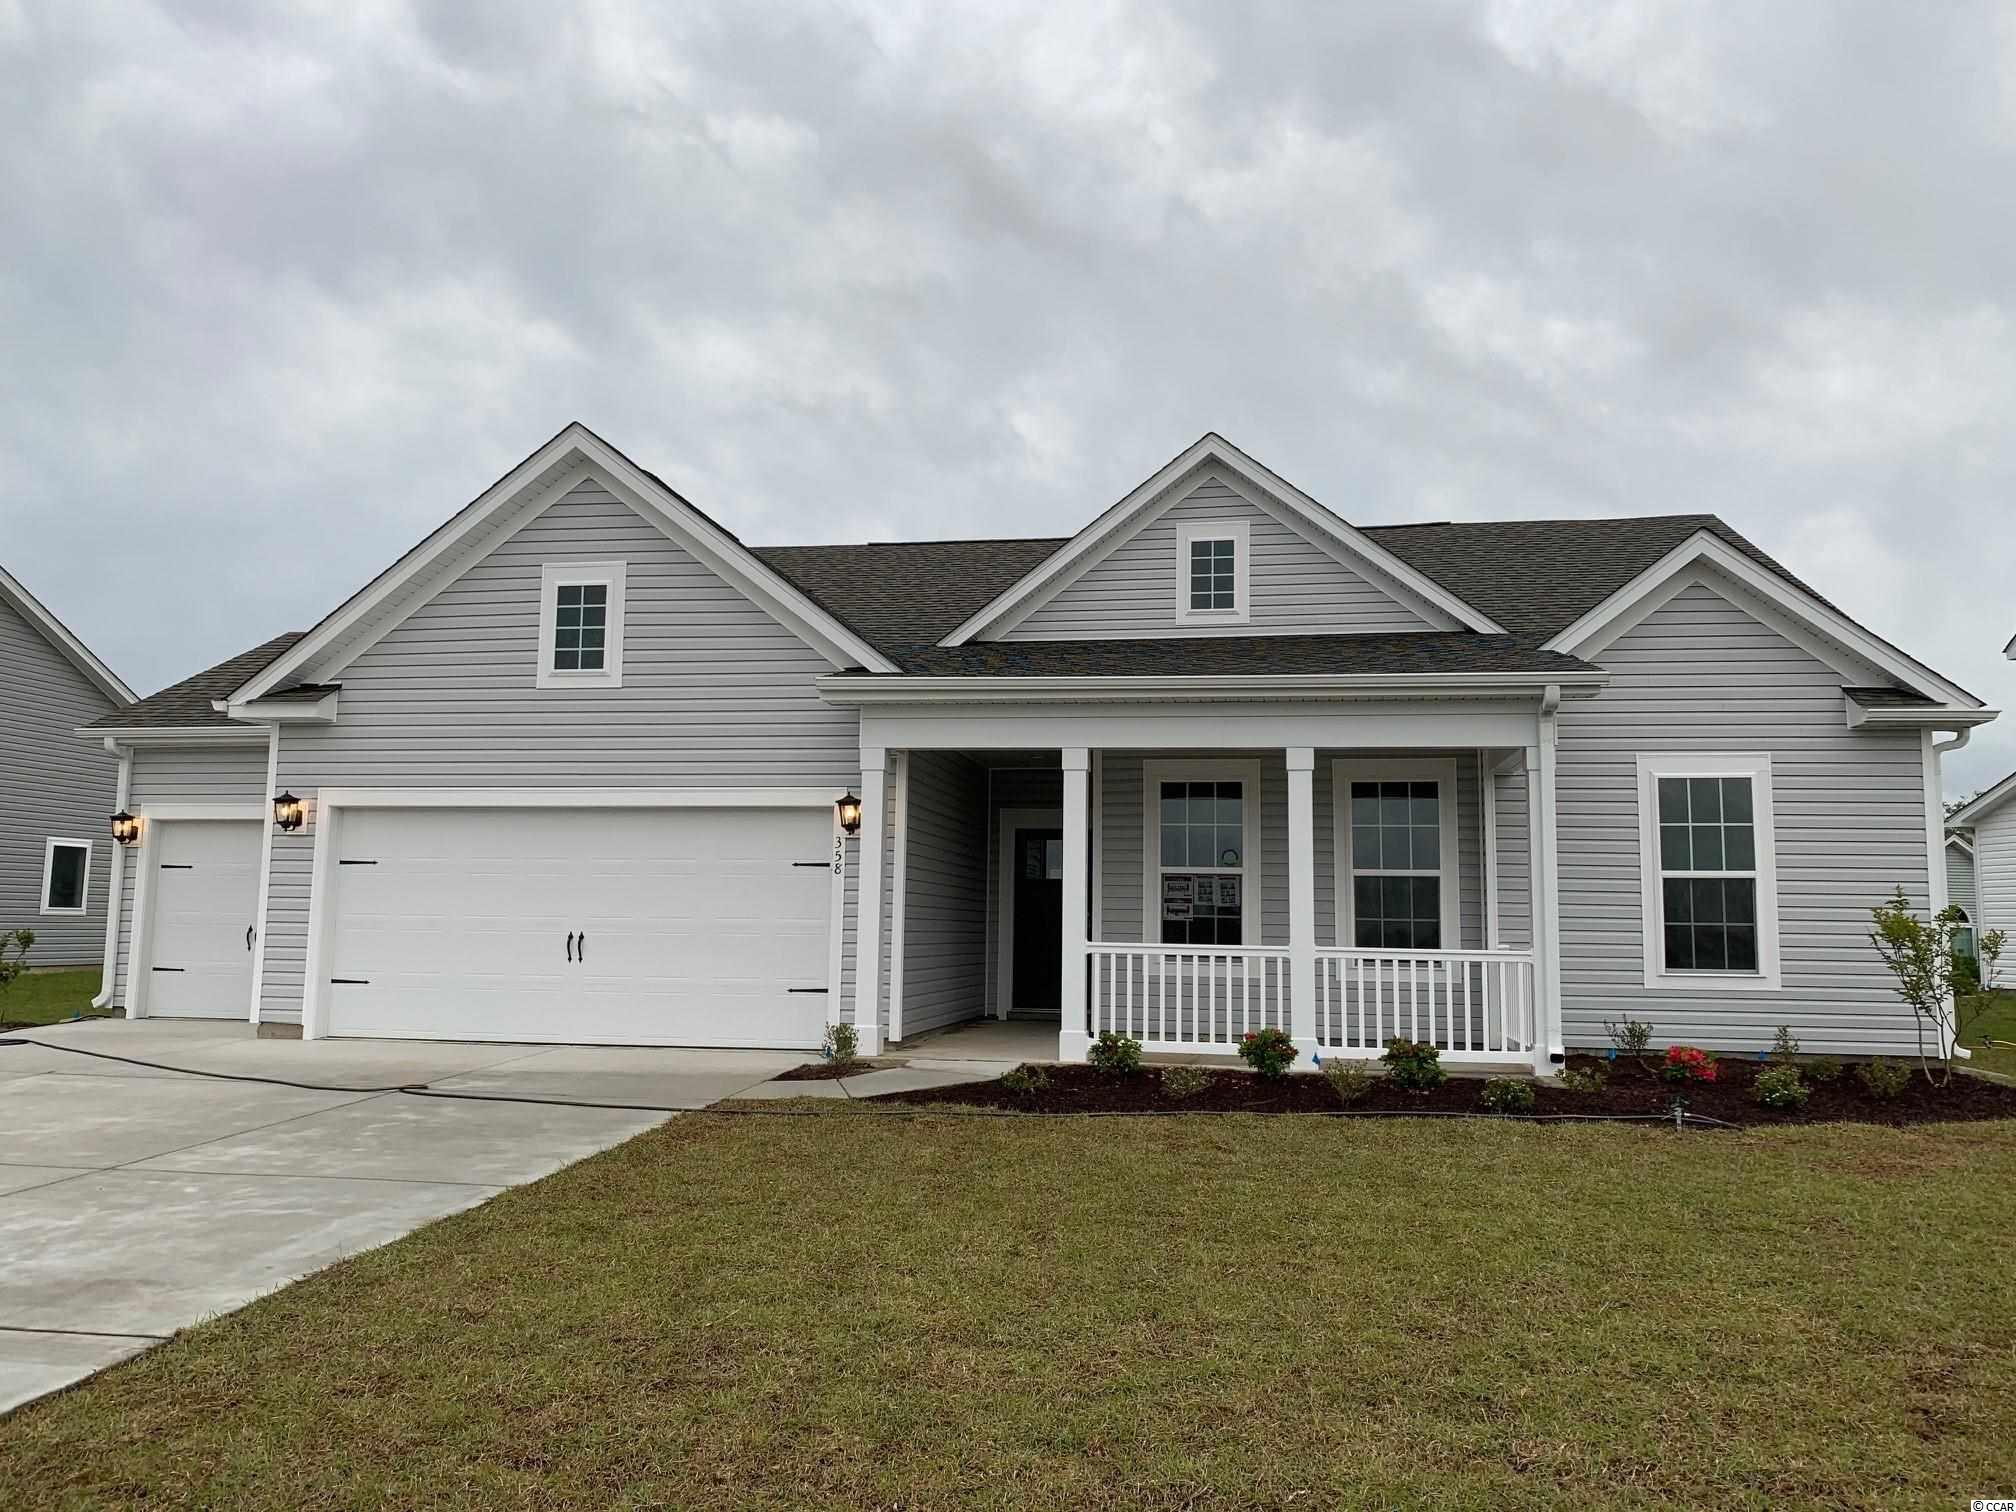 This Oxford-TRL home is pending with options personalized by the buyer, but we can build a home for you in 4.5-5 months!  Come see our decorated showcase-model homes Monday 1-5, Tuesday to Saturday 9-5, Sunday 12-5.  This Oxford-TRL (Traditional elevation) home includes a covered porch, 3-car garage, 3 bedrooms, 2 baths, and a study.  The kitchen is open to the Great room which boasts a vaulted ceiling.  Bedrooms 2 and 3 are privately located away from the Primary bedroom which is equipped with a bay window.  Awesome included features:  Daltile 12x12 tile in all baths and laundry room, the Primary bath includes a tile walk-in spa shower with a rain shower head and wall shower head, the Kitchen and both Baths feature white Master Brand Brellin cabinets, Granite kitchen counter tops, Level 2 Kitchen backsplash, Whirlpool kitchen appliances and washer/dryer, a lovely glass 3-Panel front door, upgraded Mohawk carpet in Bedrooms 2 and 3, Mohawk REV Wood flooring in all living areas and the Primary Bedroom, ceiling fans were added to the Primary bedroom, Great room, and Breakfast nook, Progress Lighting Staunton Pendants lights add flair over the spacious kitchen island, attic storage with pull-down stairs and a 24x24 utility sink in the garage, and a 10x12 patio pad off the covered porch.  All Belle Mer homes are Energy Star Certified.  Belle Mer offers amenities galore: pool, clubhouse, exercise room, sidewalks, fishing and non-motorized boating lakes, weekly curbside trash collection, and a premier location between Myrtle Beach and Murrells Inlet.  Just 3 miles to the beach, but across the street from 3 large shopping and dining venues (South Strand Commons, Super Target, and Super Walmart).